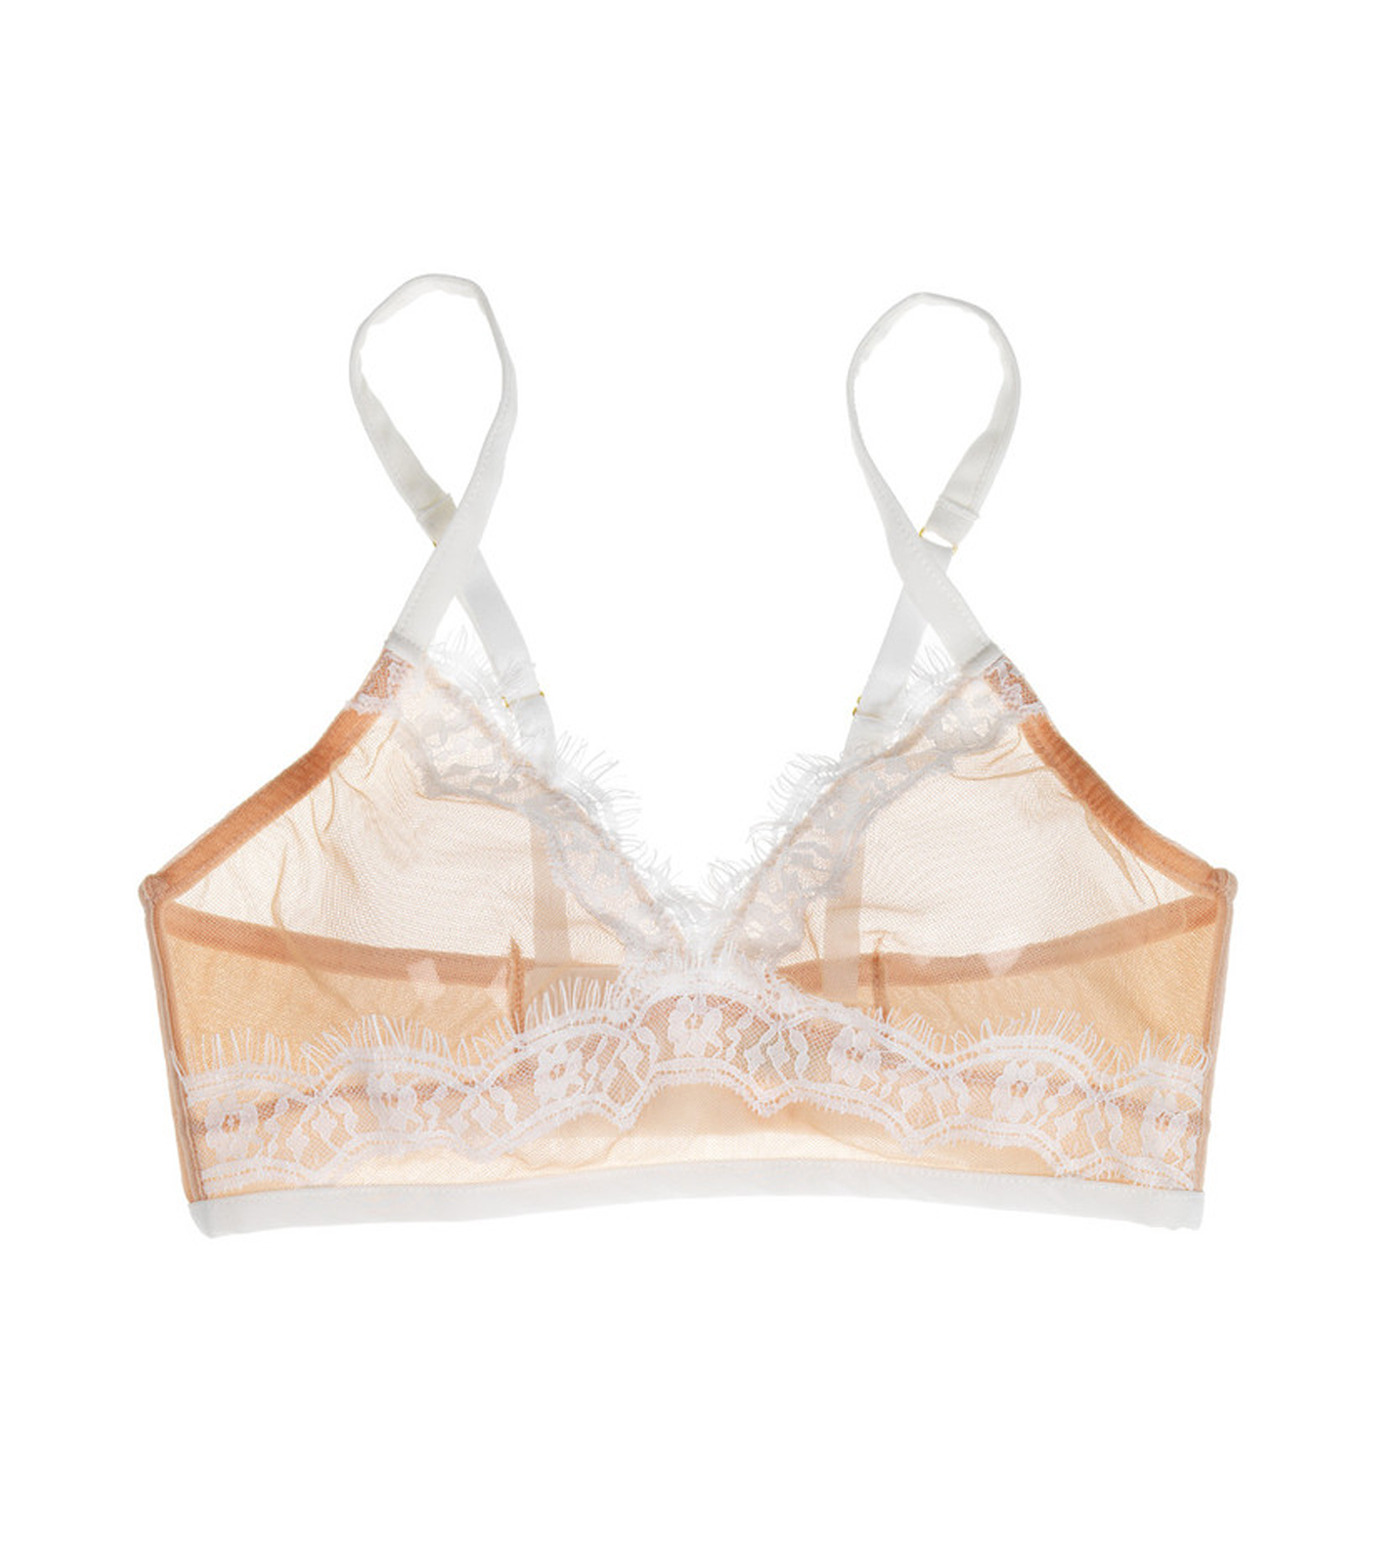 Mimi Holliday(ミミ・ホリデー)のDream Girl New Comfort Triangle Bra-LIGHT BEIGE(LINGERIE/LINGERIE)-SS16-202-51 拡大詳細画像1